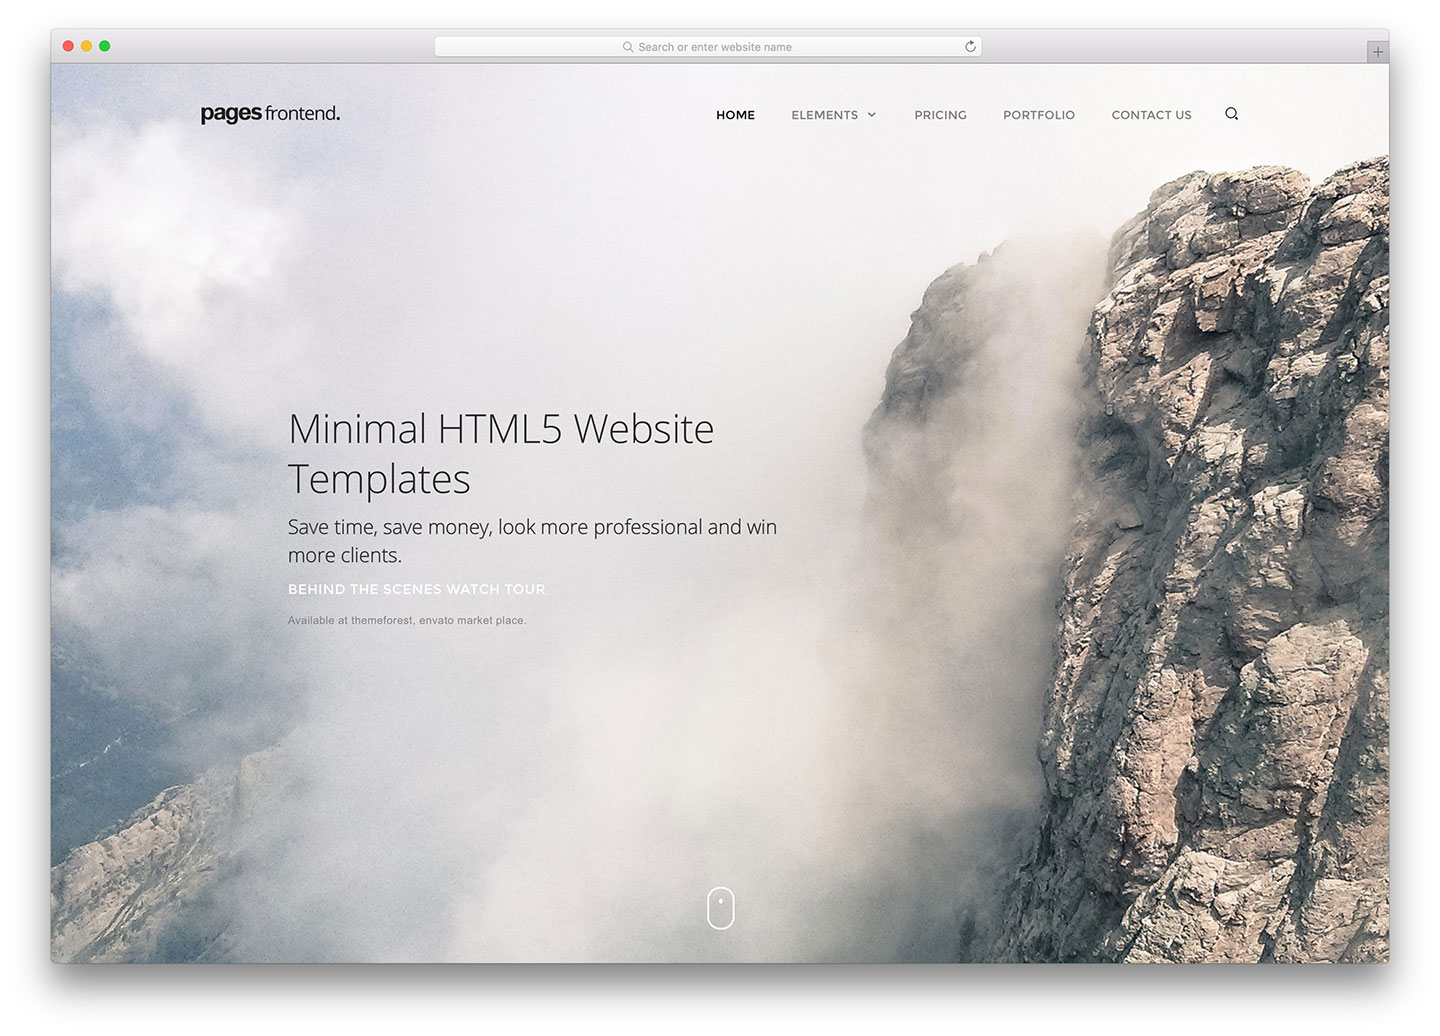 minimalist website templates 20 Best Minimal HTML5/CSS3 Website Templates 2018 - Colorlib